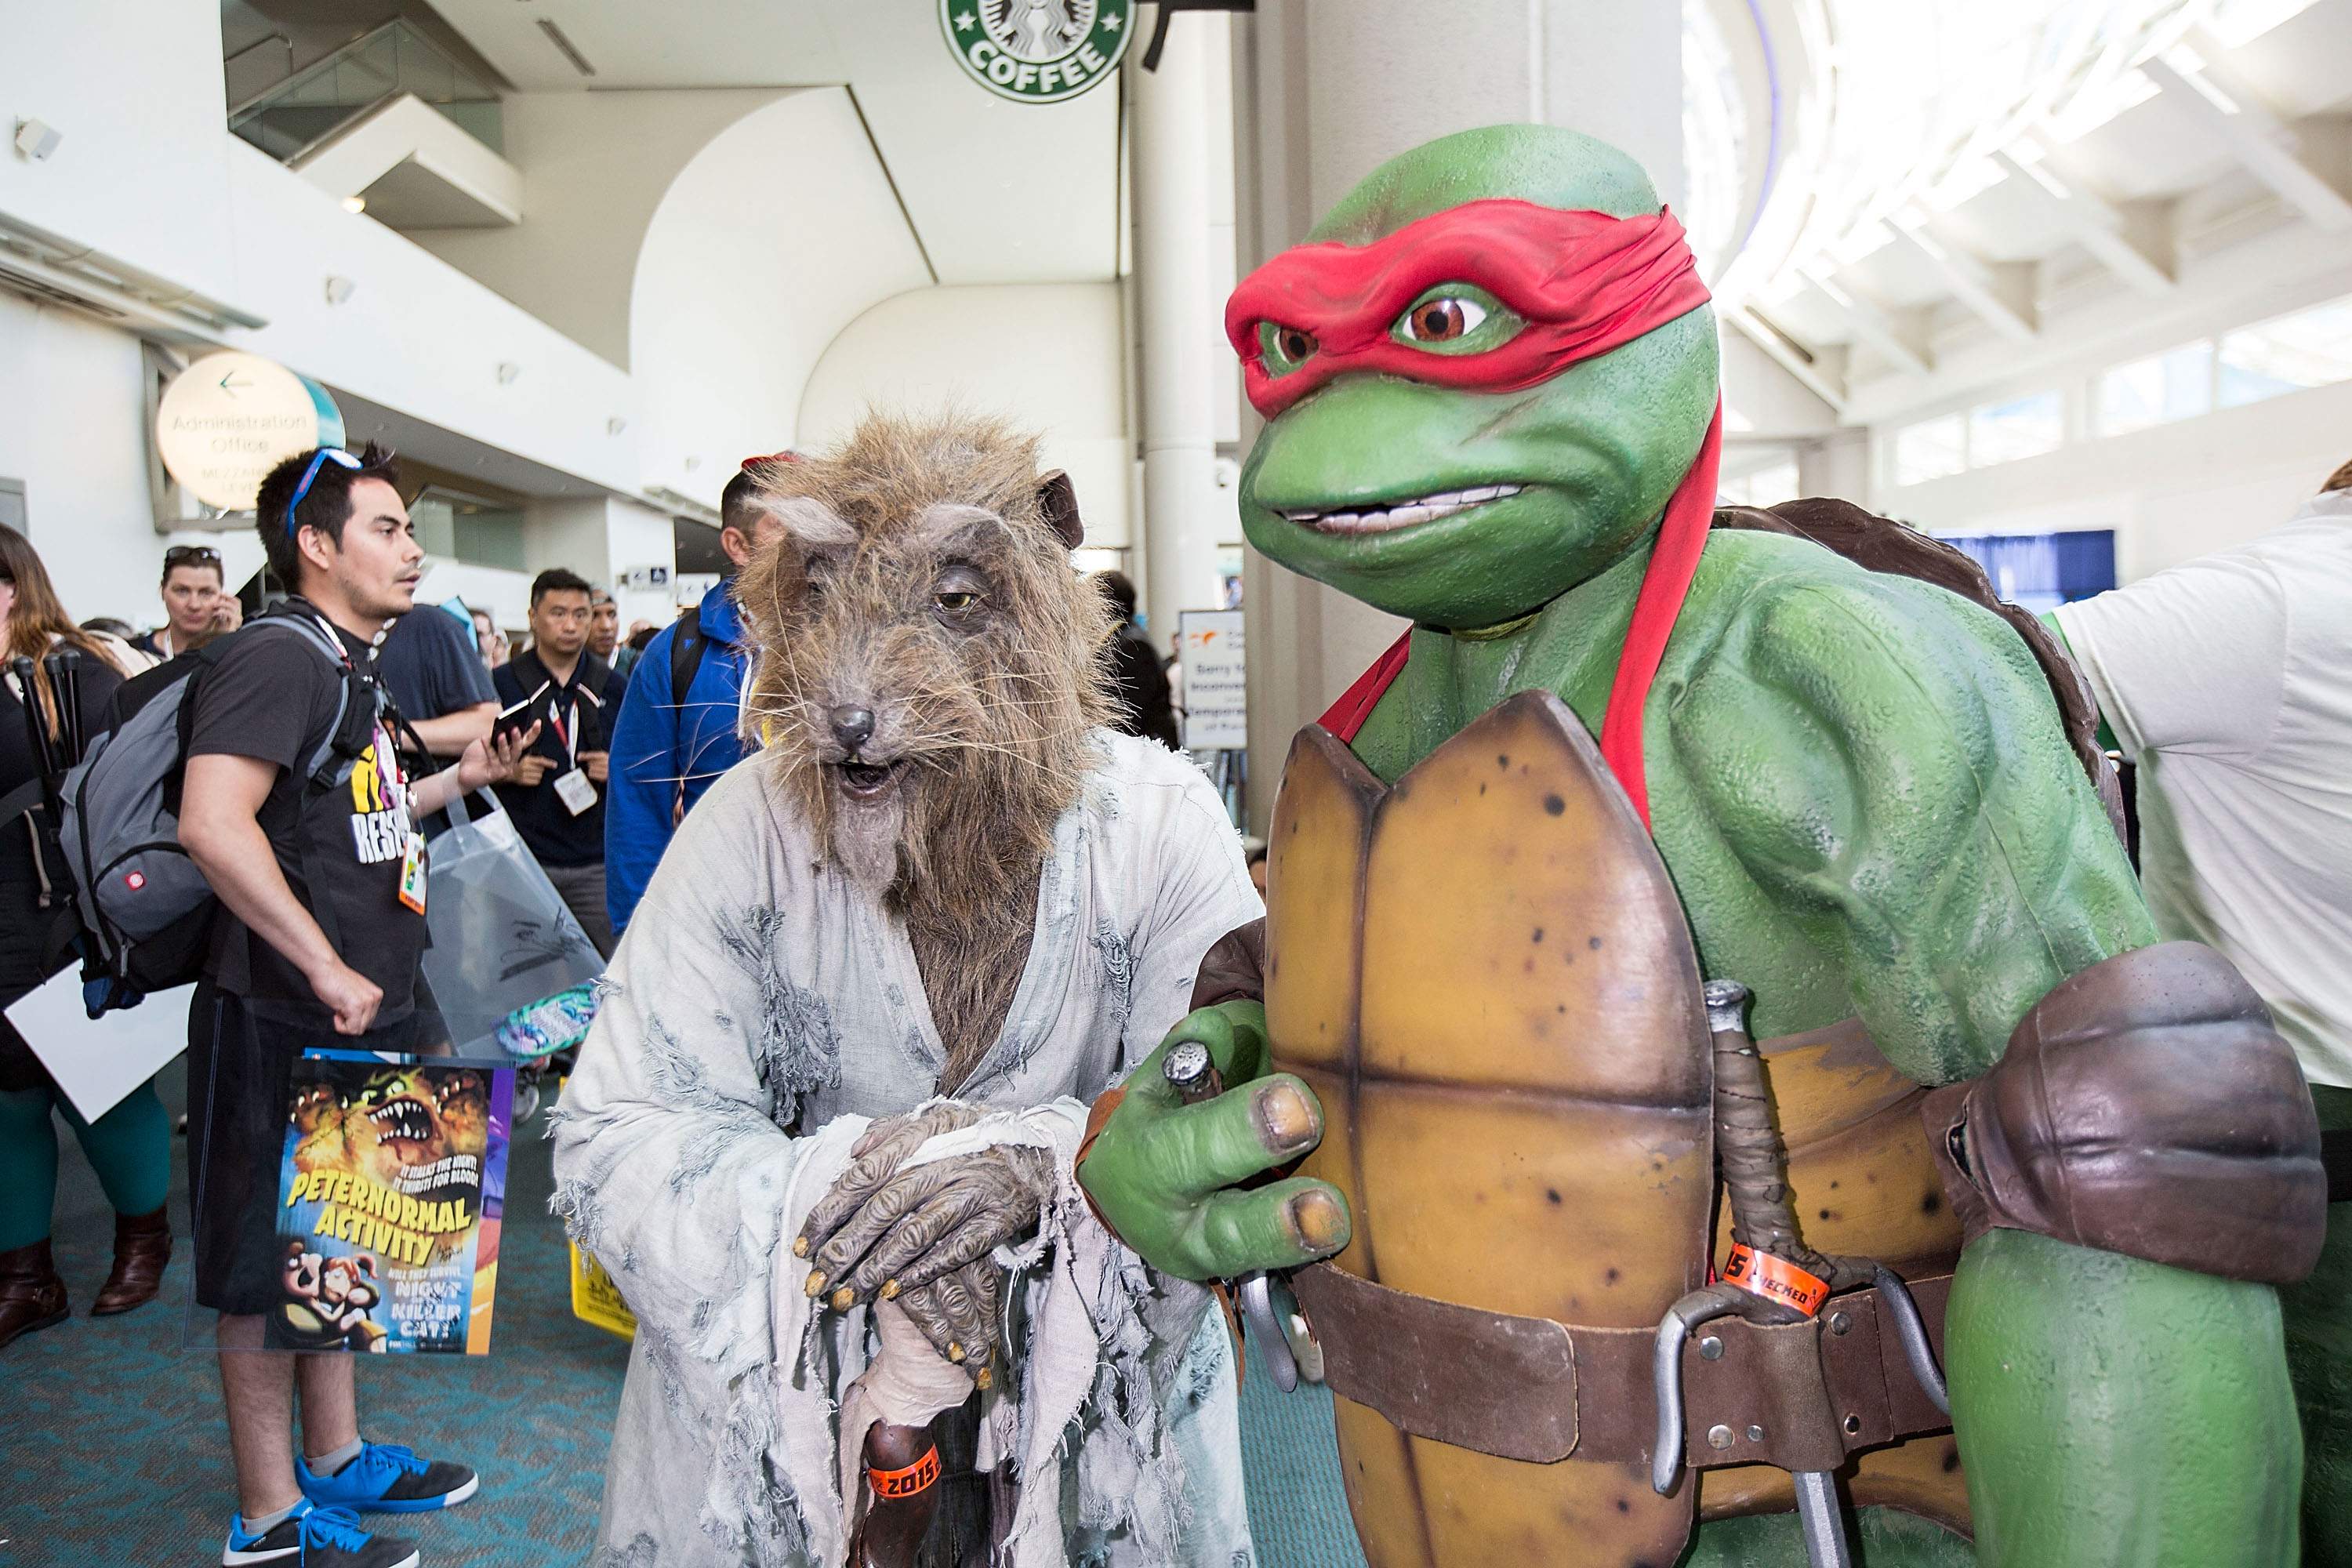 SAN DIEGO, CA - JULY 11:  Costumed fans attend Comic-Con International at San Diego Convention Center on July 11, 2015 in San